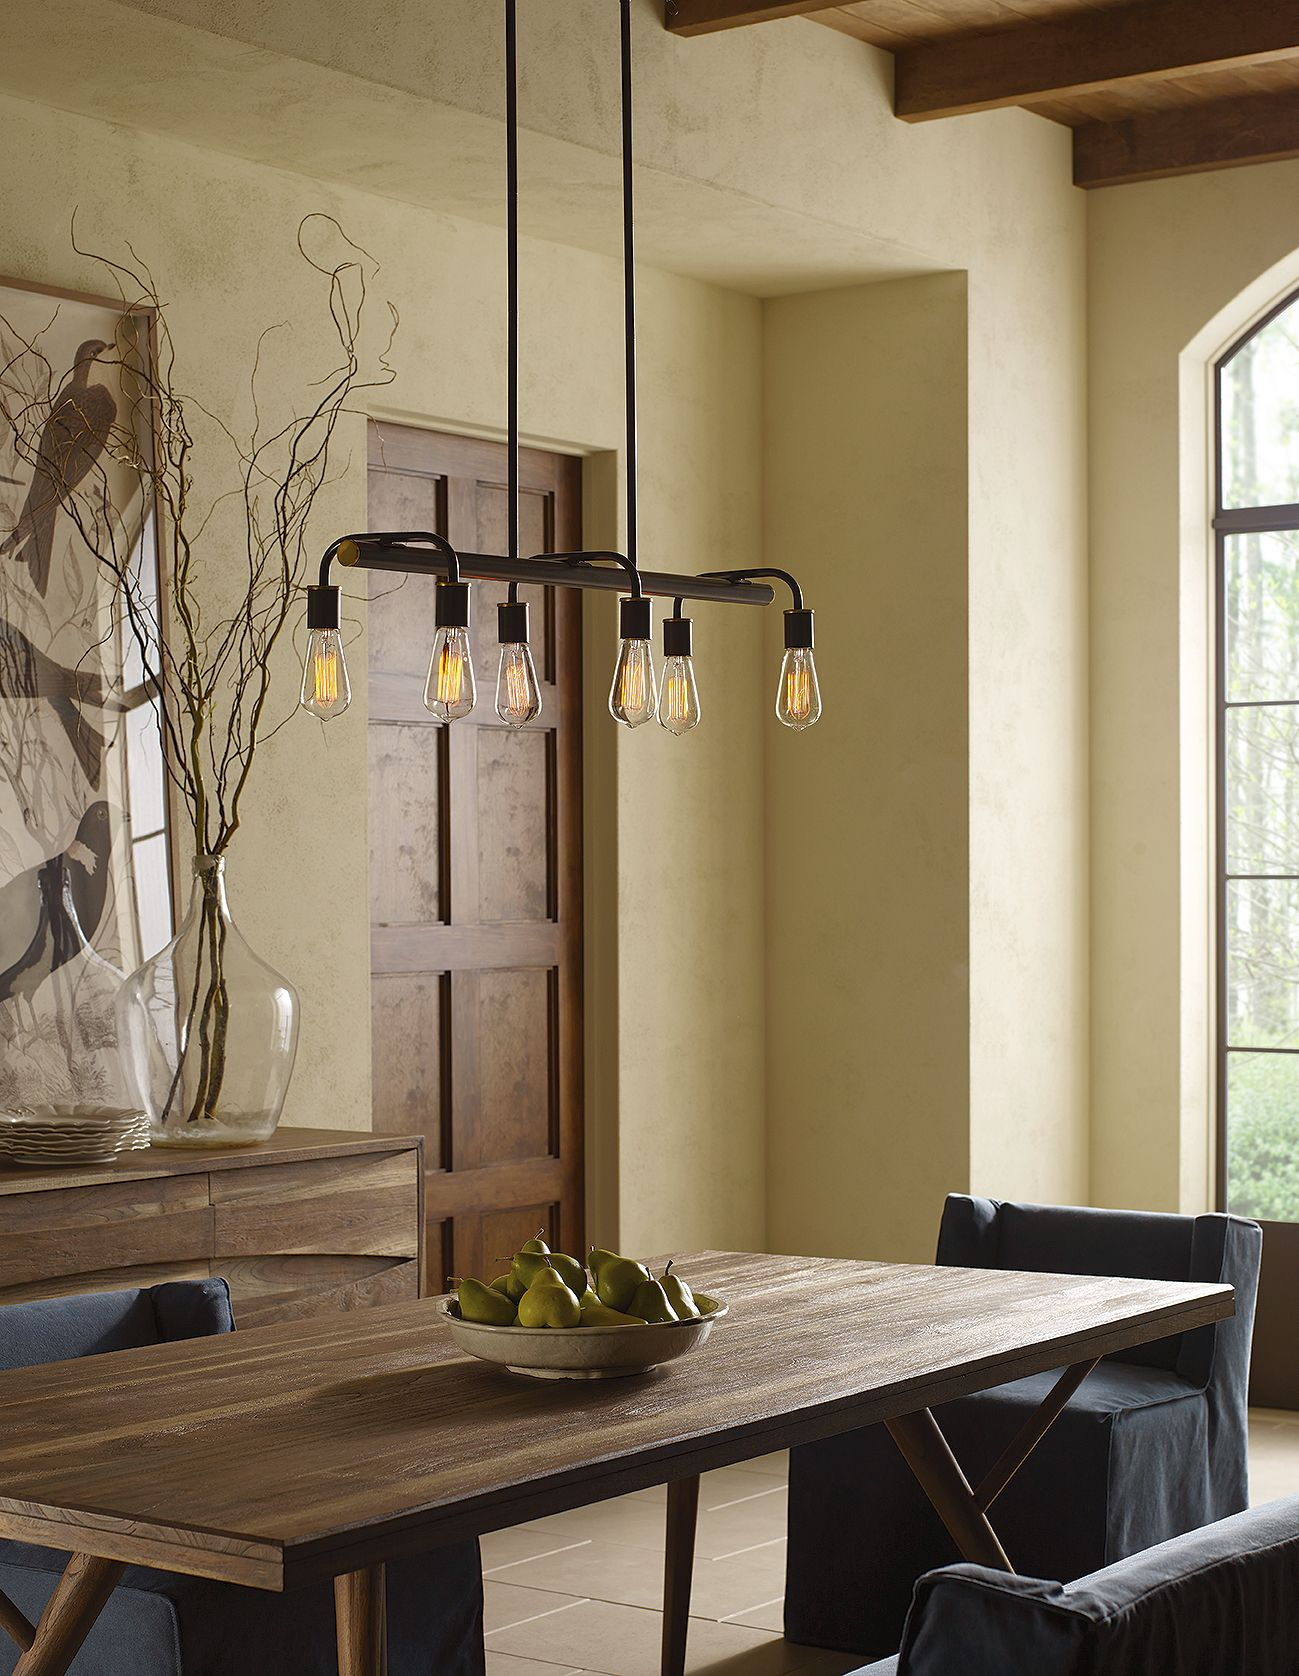 A vintage chandelier with exposed lamps pairs well with a rustic